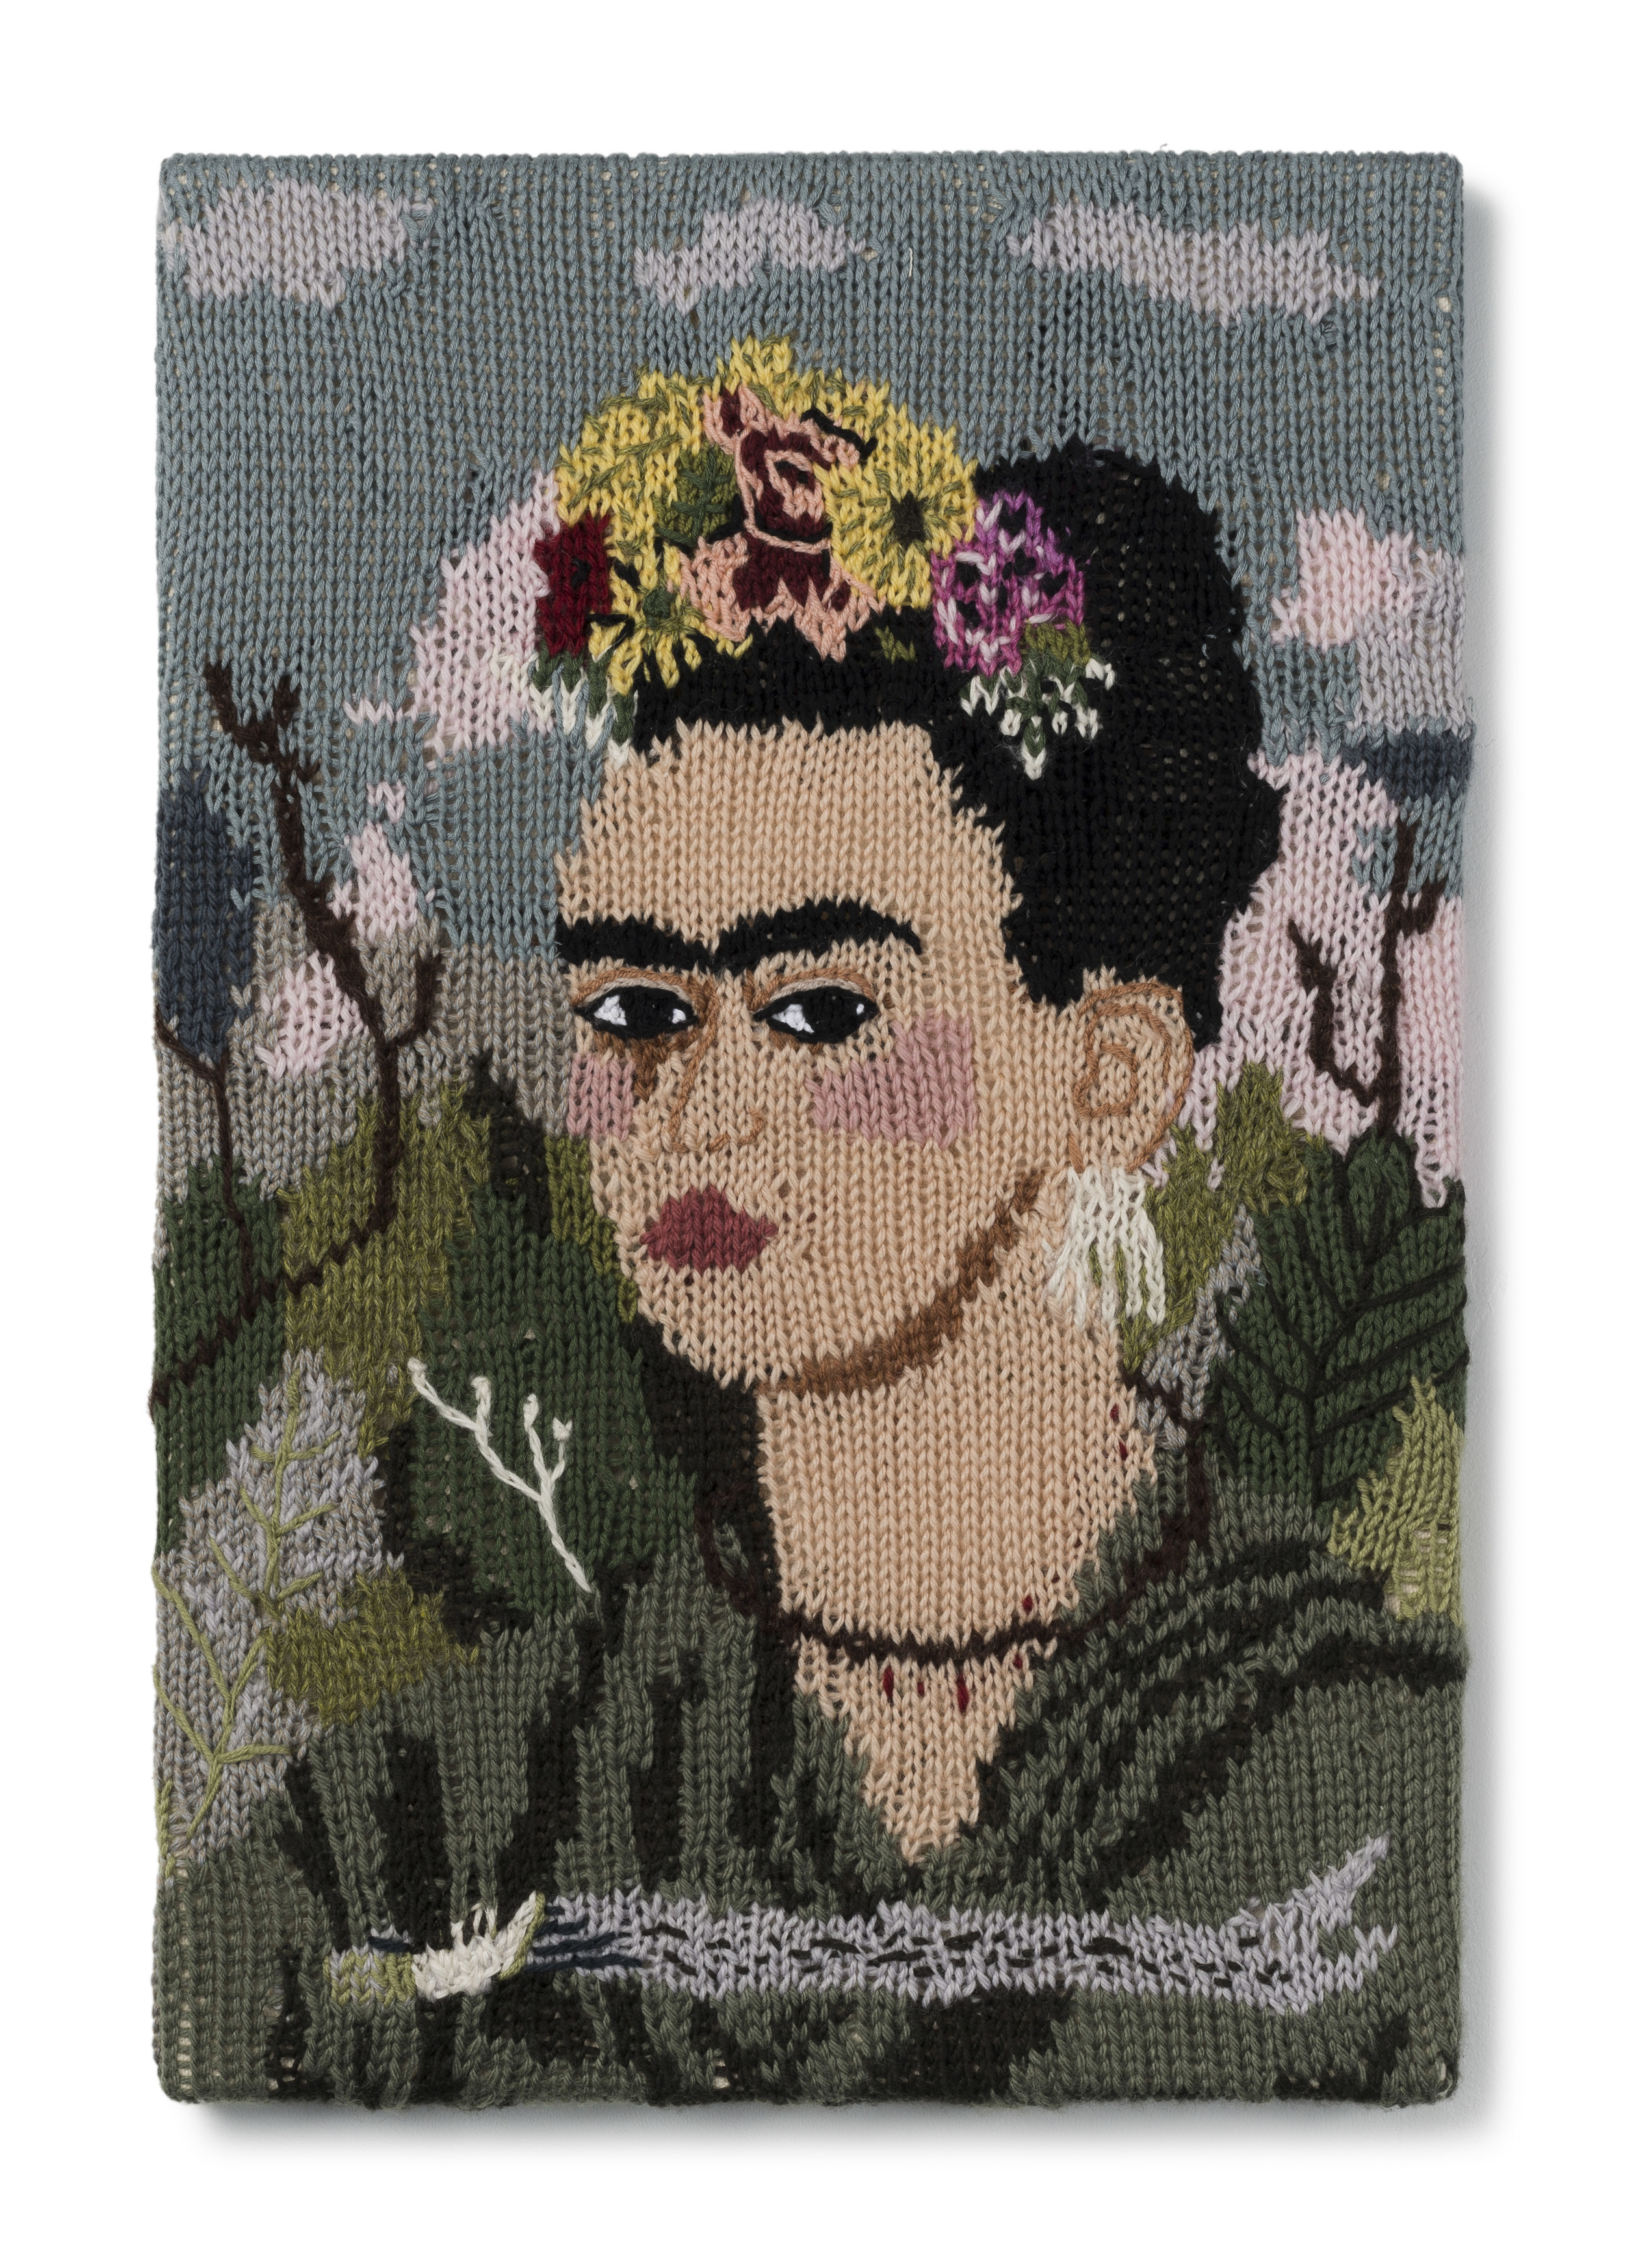 "Kate Just, Feminist Fan #14 (Frida Kahlo Self Portrait: 1940), 2015         Normal   0           false   false   false     EN-AU   JA   X-NONE                                                                                                                                                                                                                                                                                                                                                                           /* Style Definitions */  table.MsoNormalTable 	{mso-style-name:""Table Normal""; 	mso-tstyle-rowband-size:0; 	mso-tstyle-colband-size:0; 	mso-style-noshow:yes; 	mso-style-priority:99; 	mso-style-parent:""""; 	mso-padding-alt:0in 5.4pt 0in 5.4pt; 	mso-para-margin-top:0in; 	mso-para-margin-right:0in; 	mso-para-margin-bottom:10.0pt; 	mso-para-margin-left:0in; 	line-height:115%; 	mso-pagination:widow-orphan; 	font-size:11.0pt; 	font-family:""Calibri"",""sans-serif""; 	mso-ascii-font-family:Calibri; 	mso-ascii-theme-font:minor-latin; 	mso-hansi-font-family:Calibri; 	mso-hansi-theme-font:minor-latin; 	mso-fareast-language:EN-US;}"